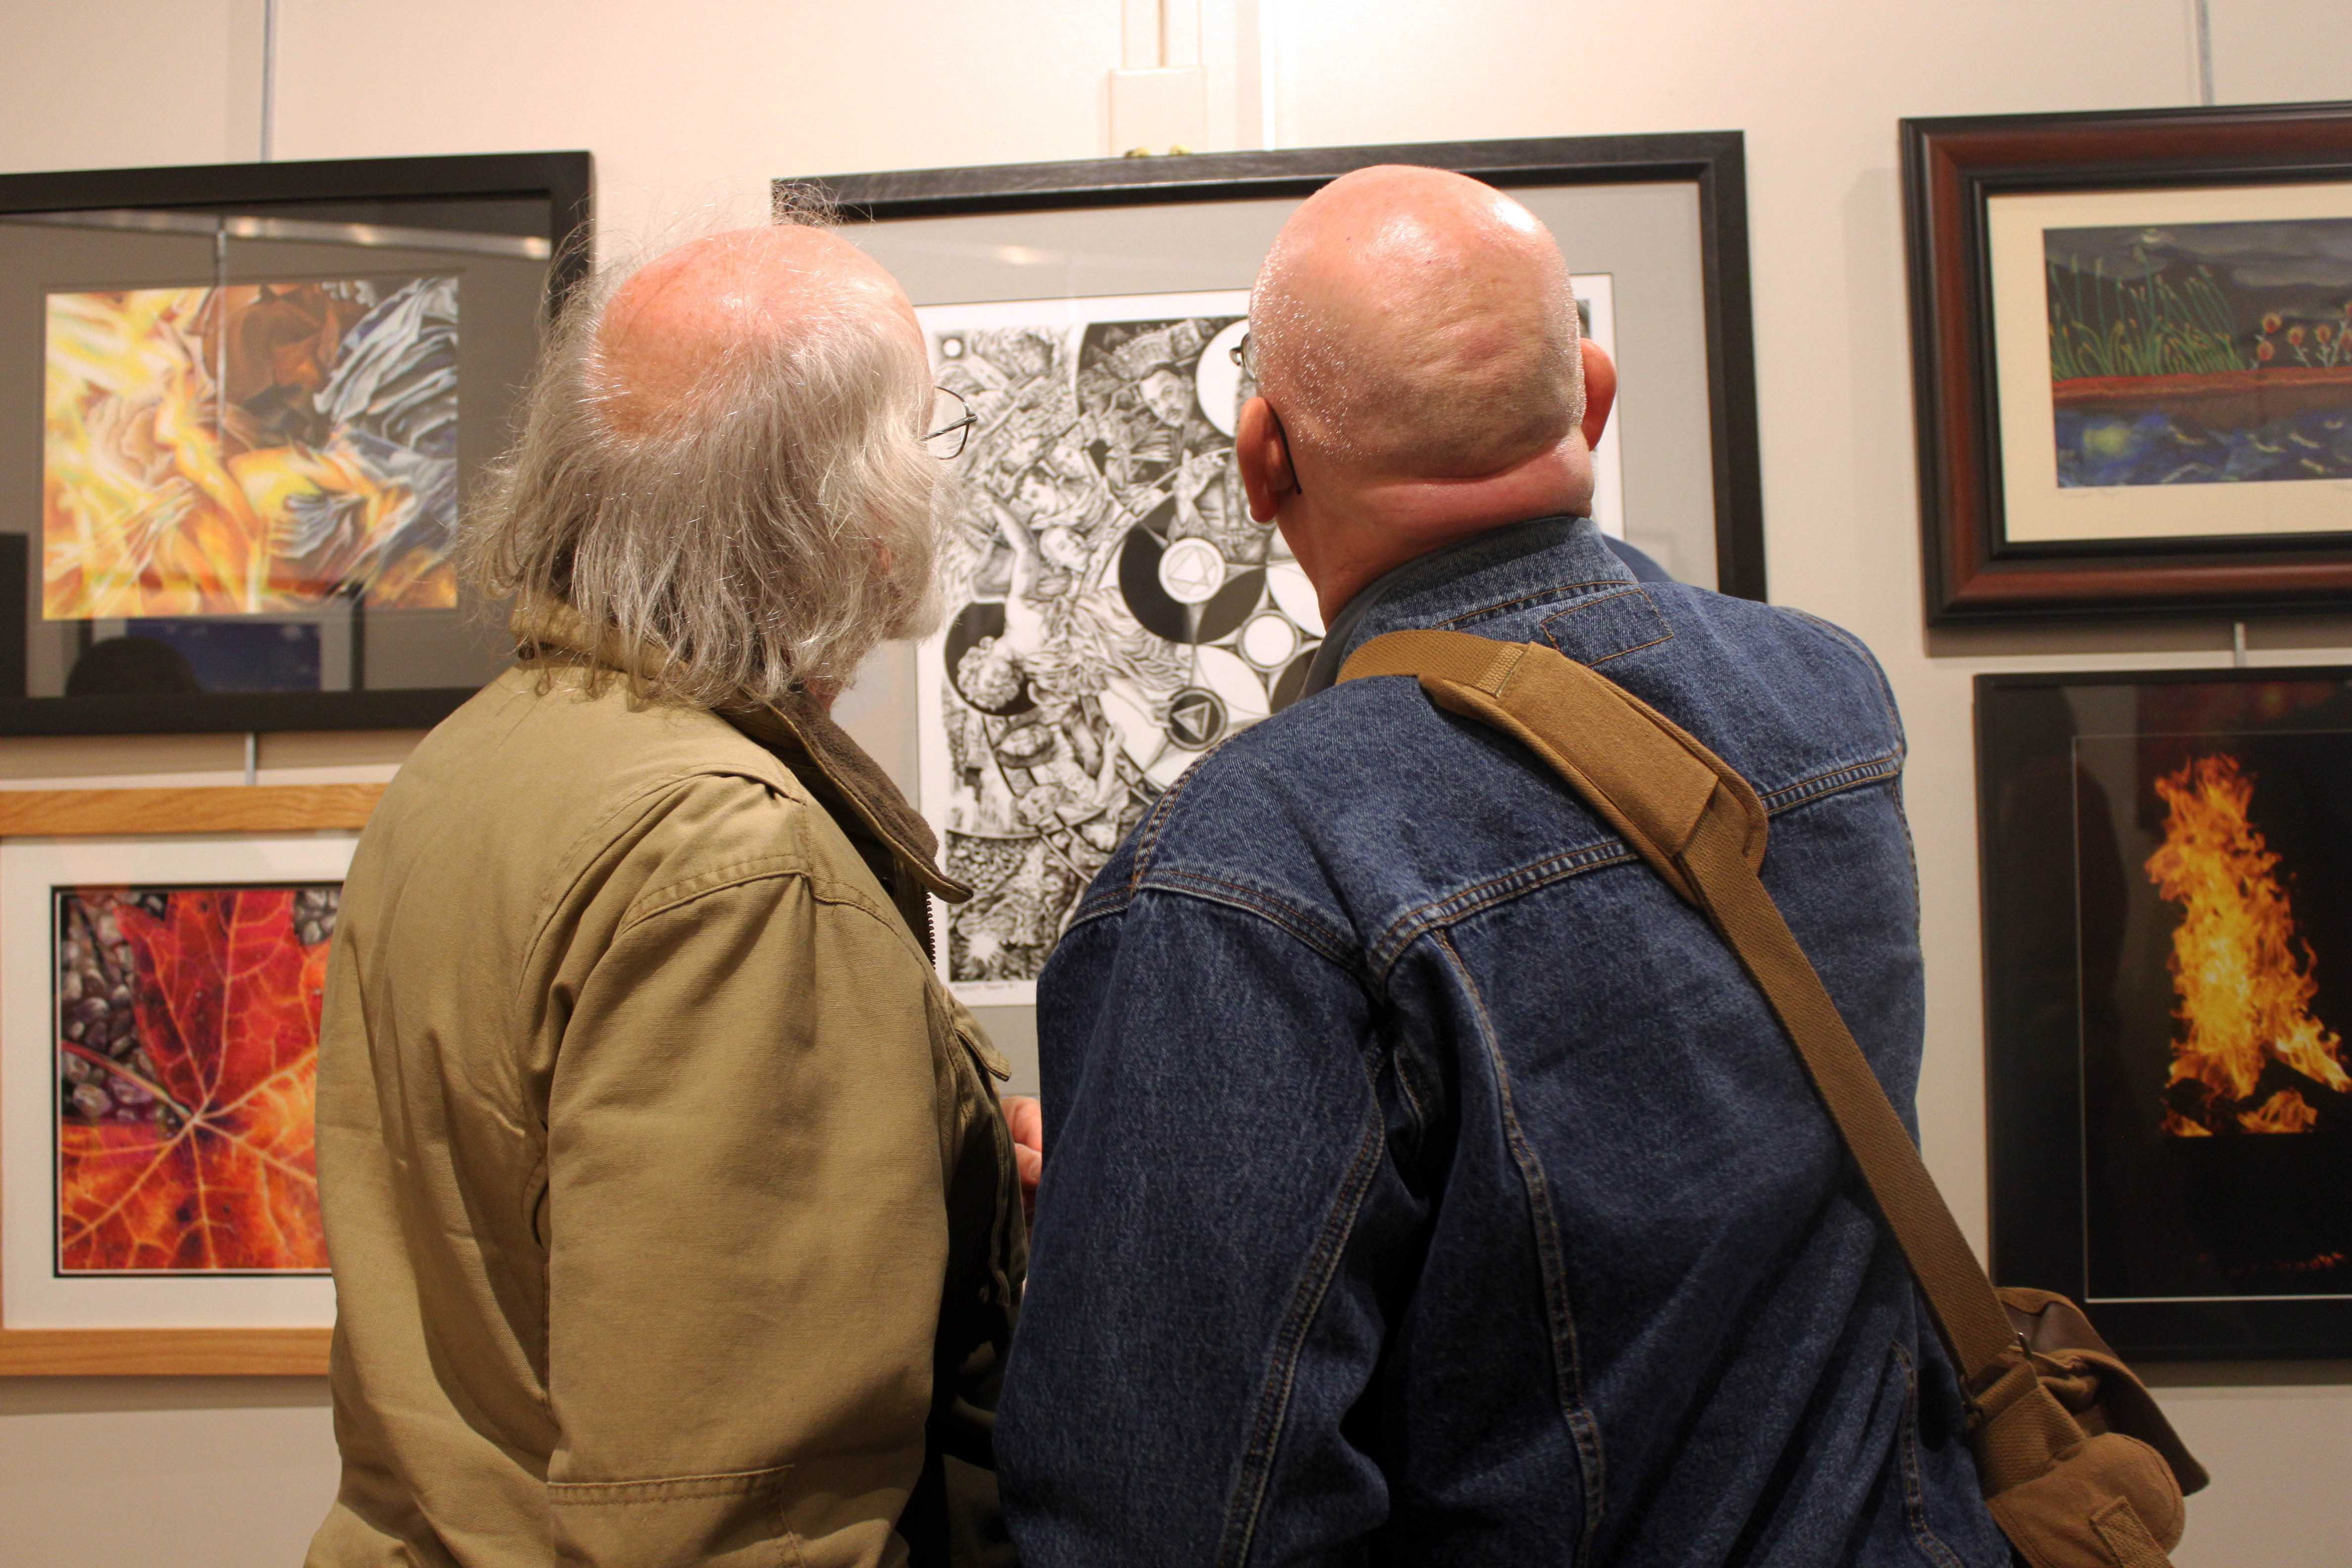 The Missouri Theater is connected to the Columbia Art League, allowing attendees to enjoy artworks from local artists while savoring their food and drink.